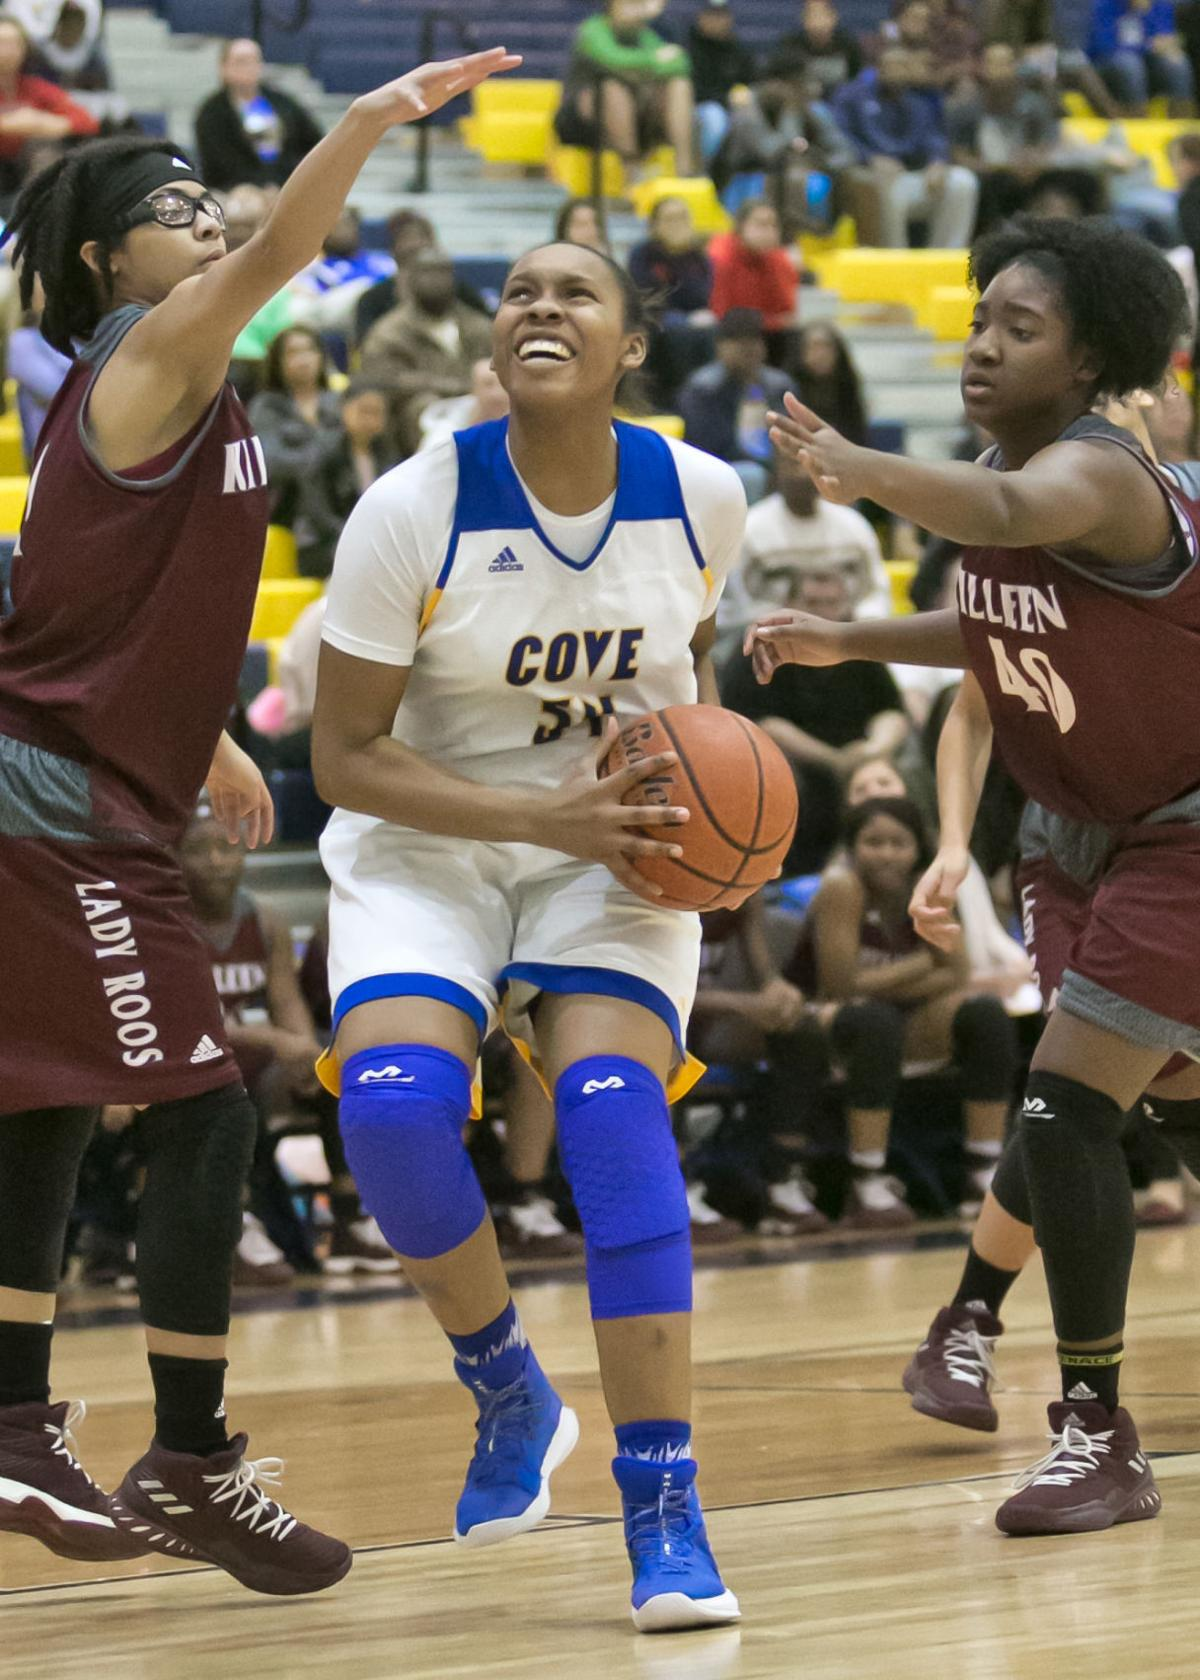 Killeen at Copperas Cove Girls Basketball